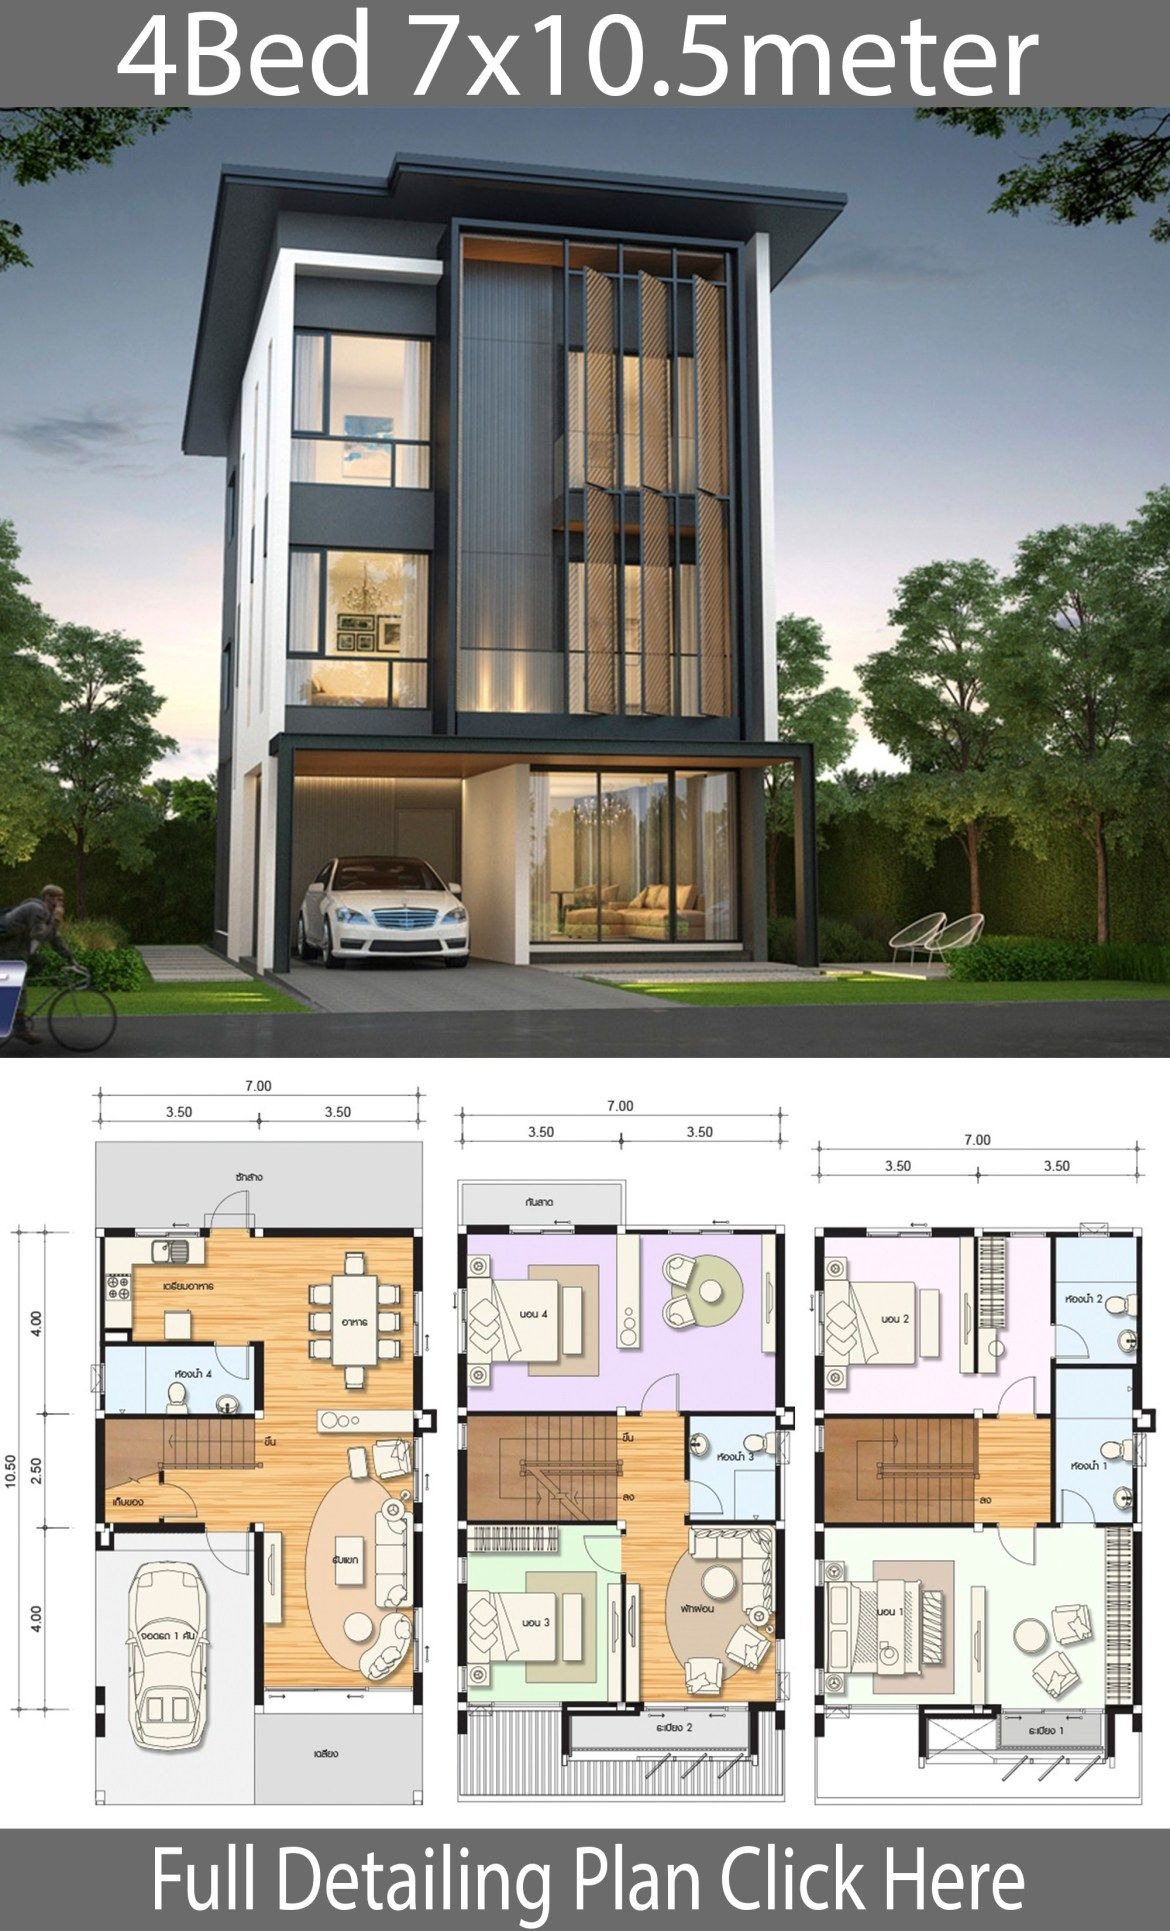 House Design Plans 3d 4 Bedrooms Fresh House Design Plan 7x10 5m with 4 Bedrooms